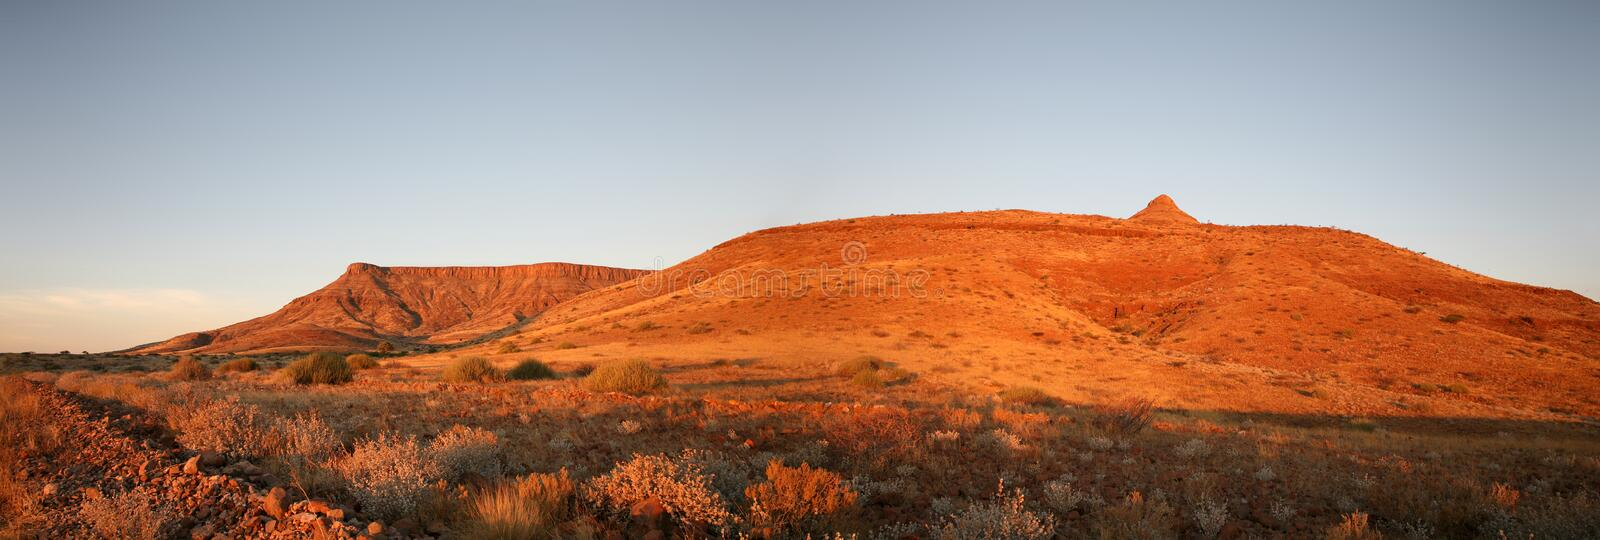 Download Wilderness in Namibia stock image. Image of ecology, dune - 2148357